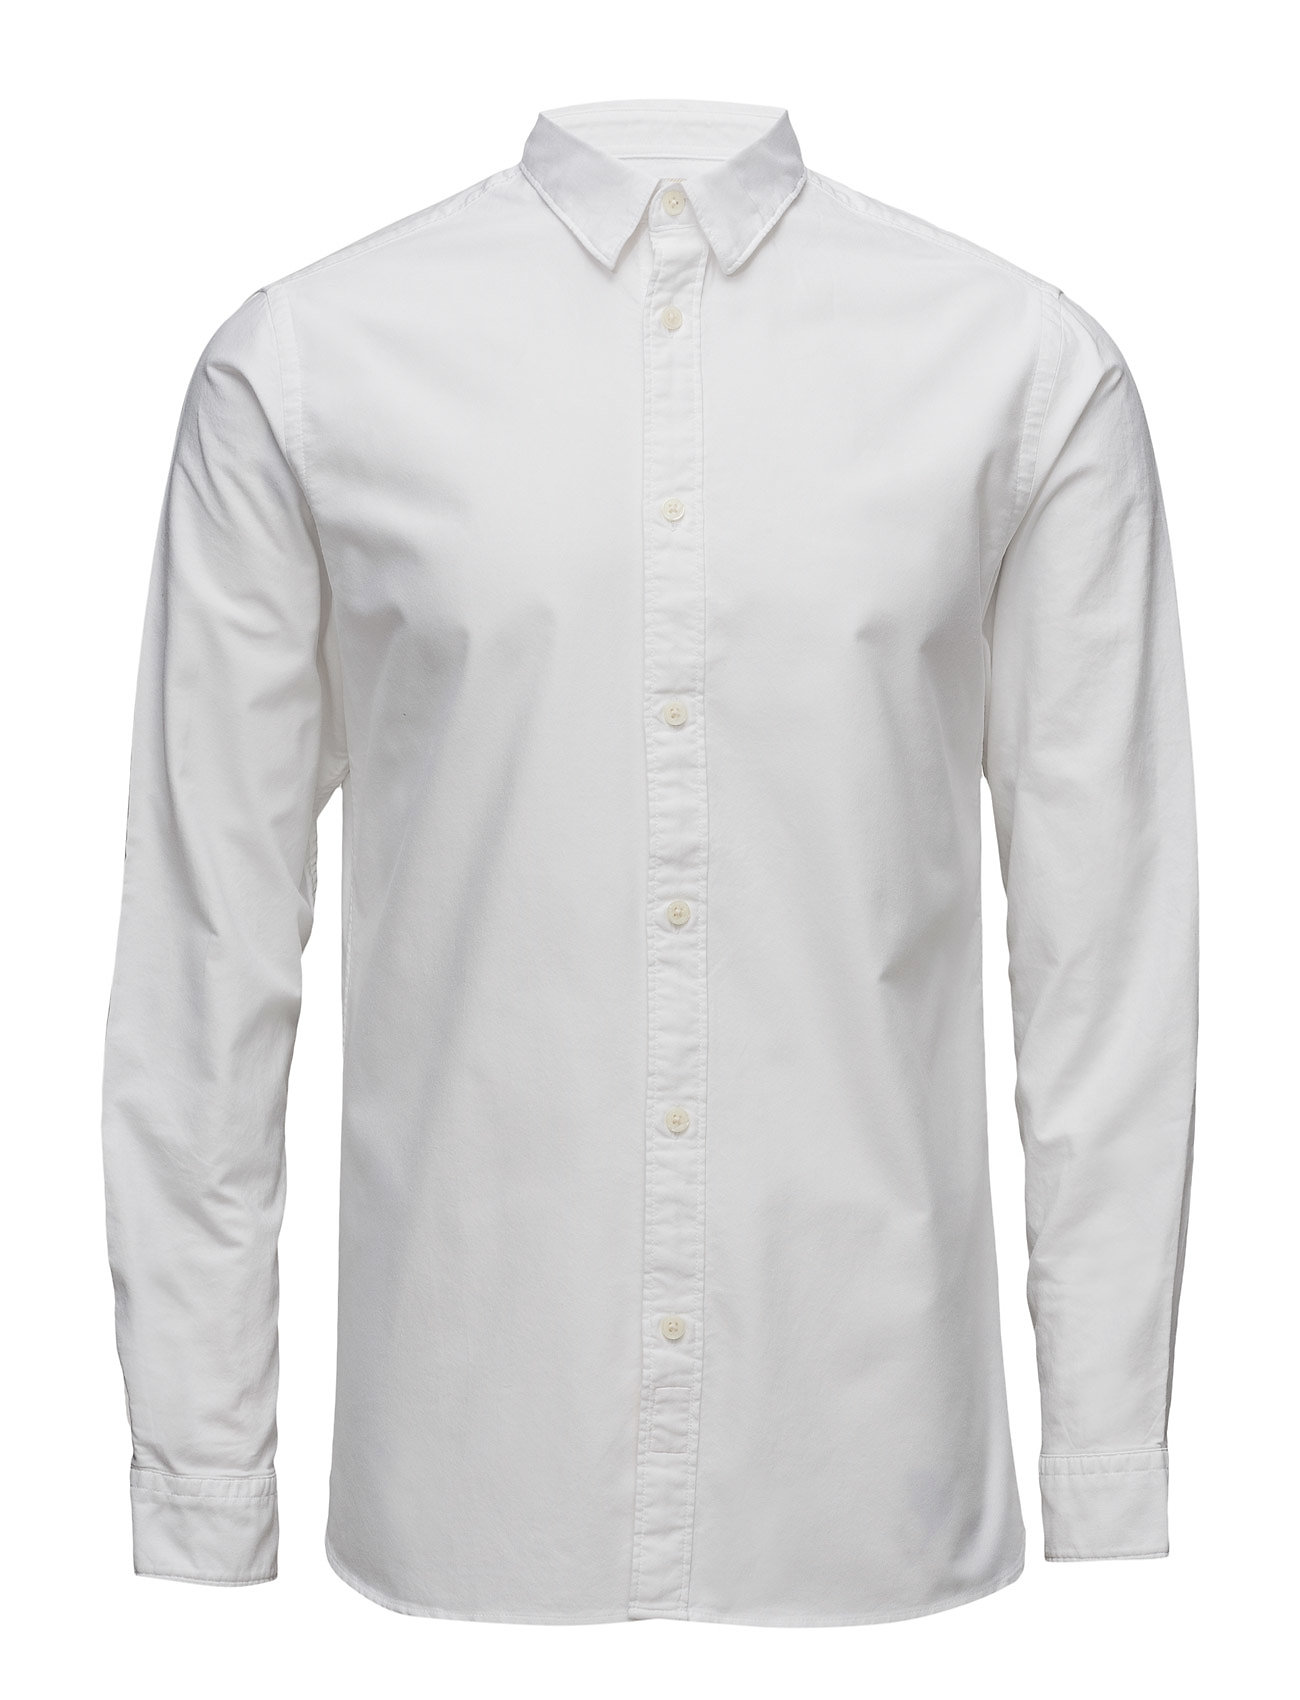 Shhonevince Shirt Ls Sts Selected Homme Business til Herrer i Bright White